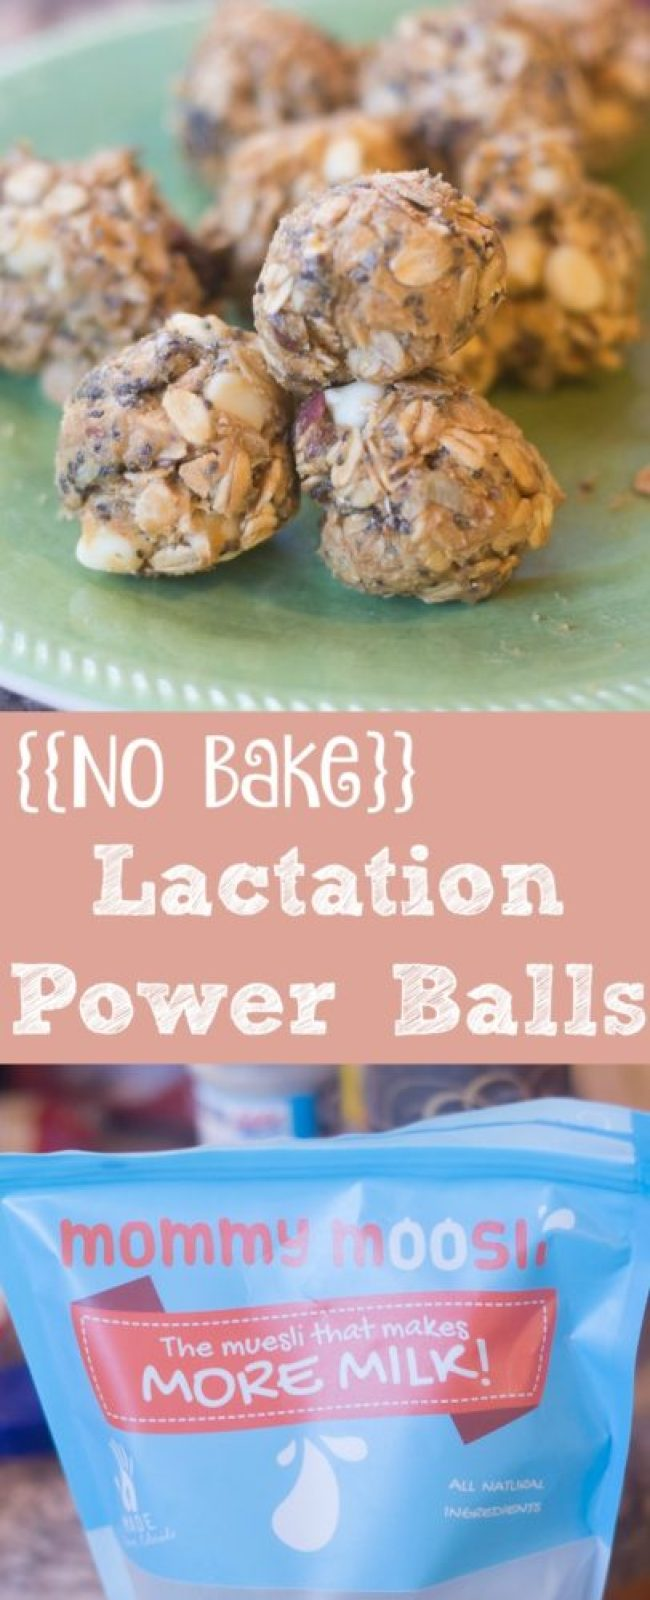 Need to increase your breastmilk supply? Look no more. These no bake lactation power balls will help - and they taste delicious (even if you AREN'T a lactating mama.)